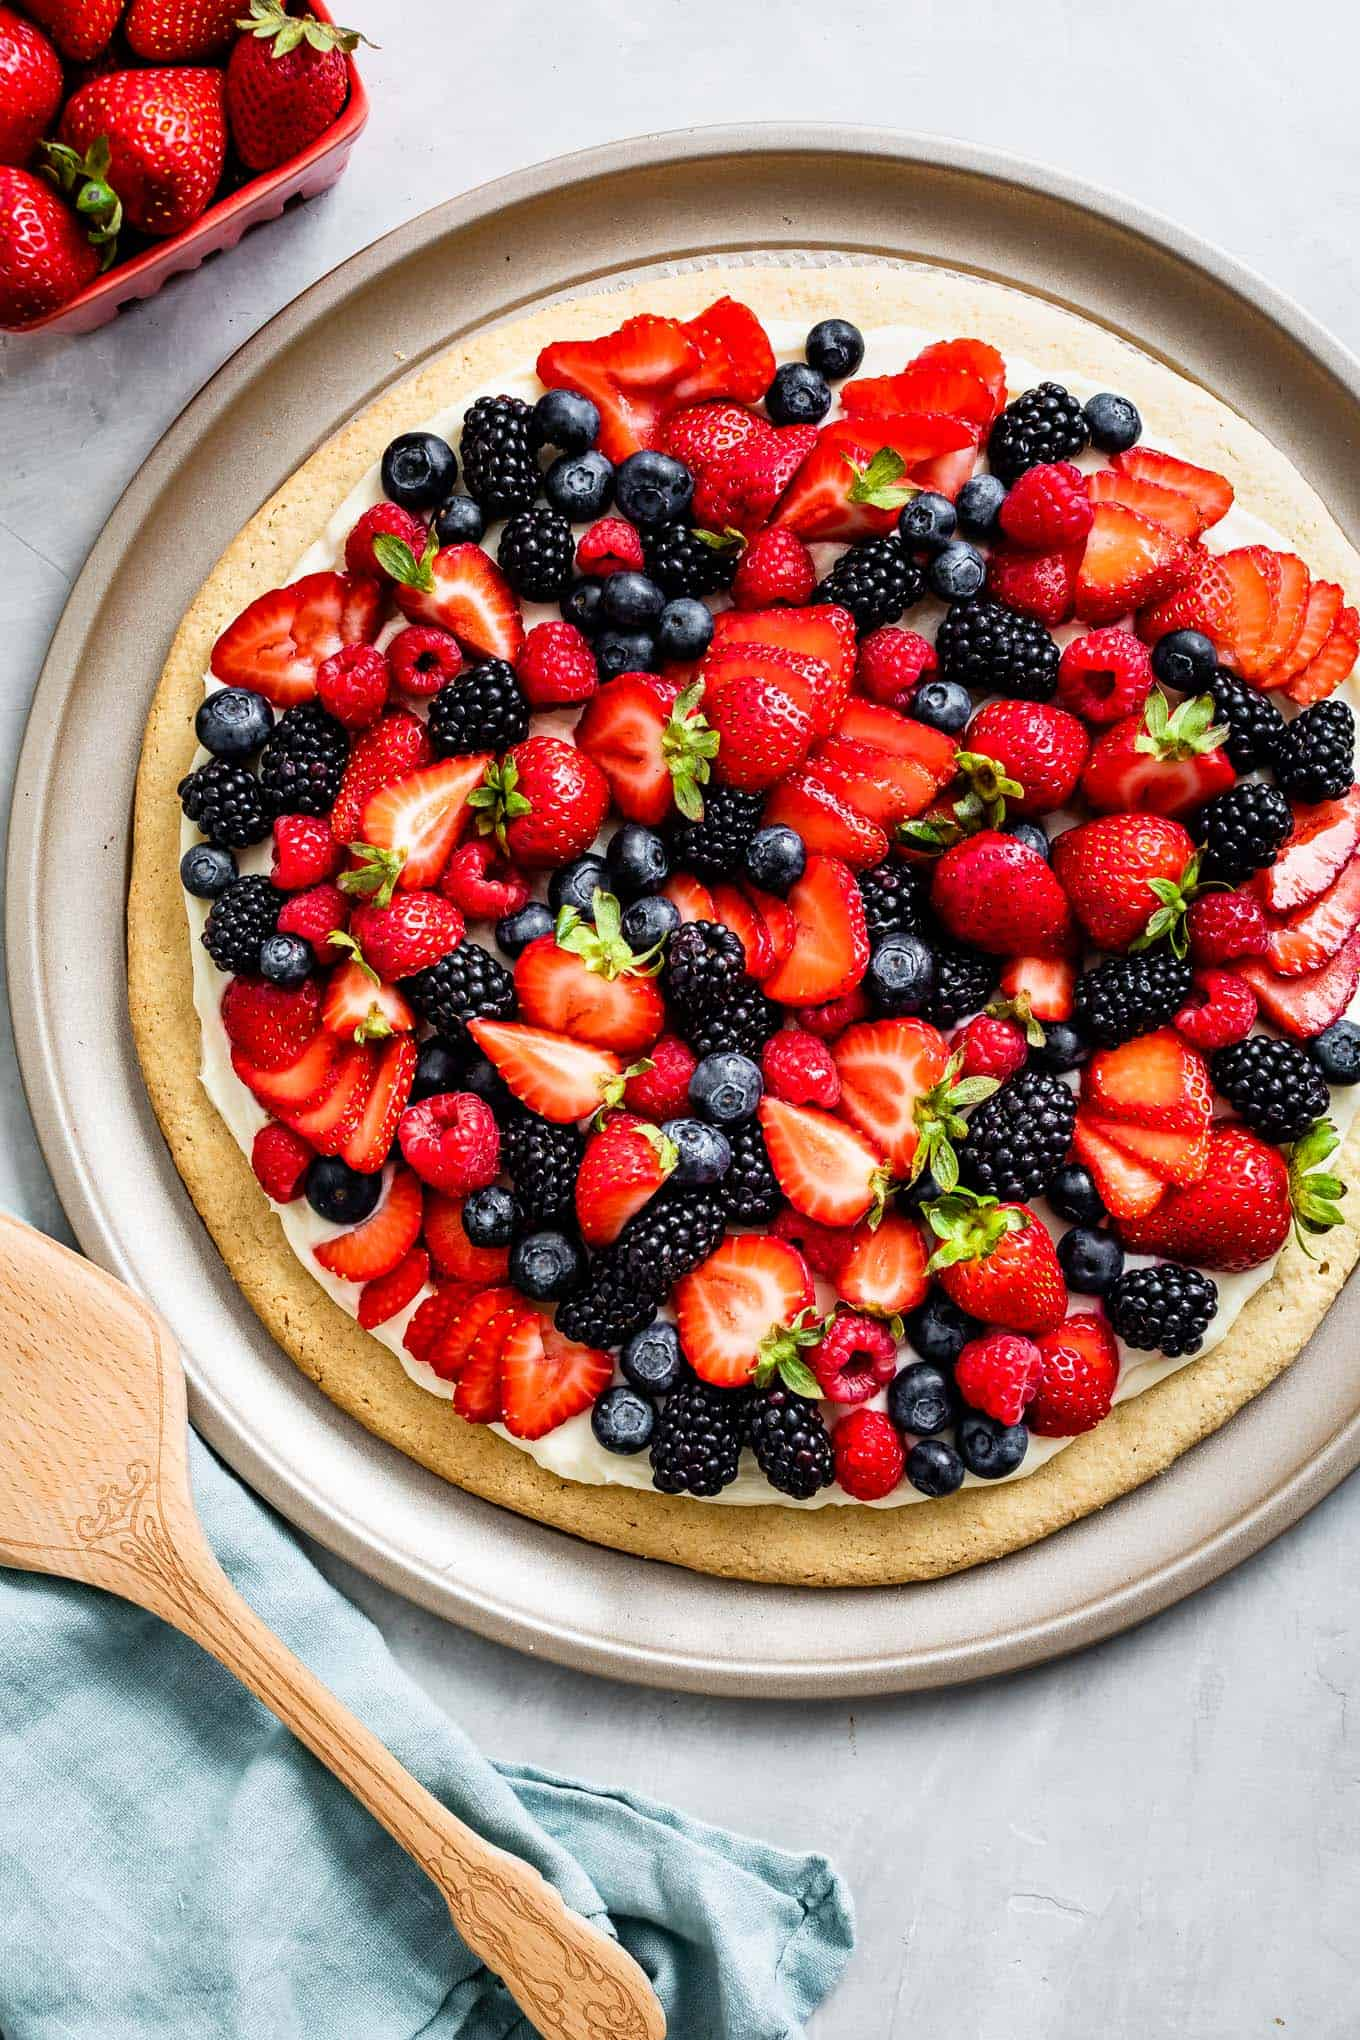 Gluten-Free Fruit Pizza with Almond Flour